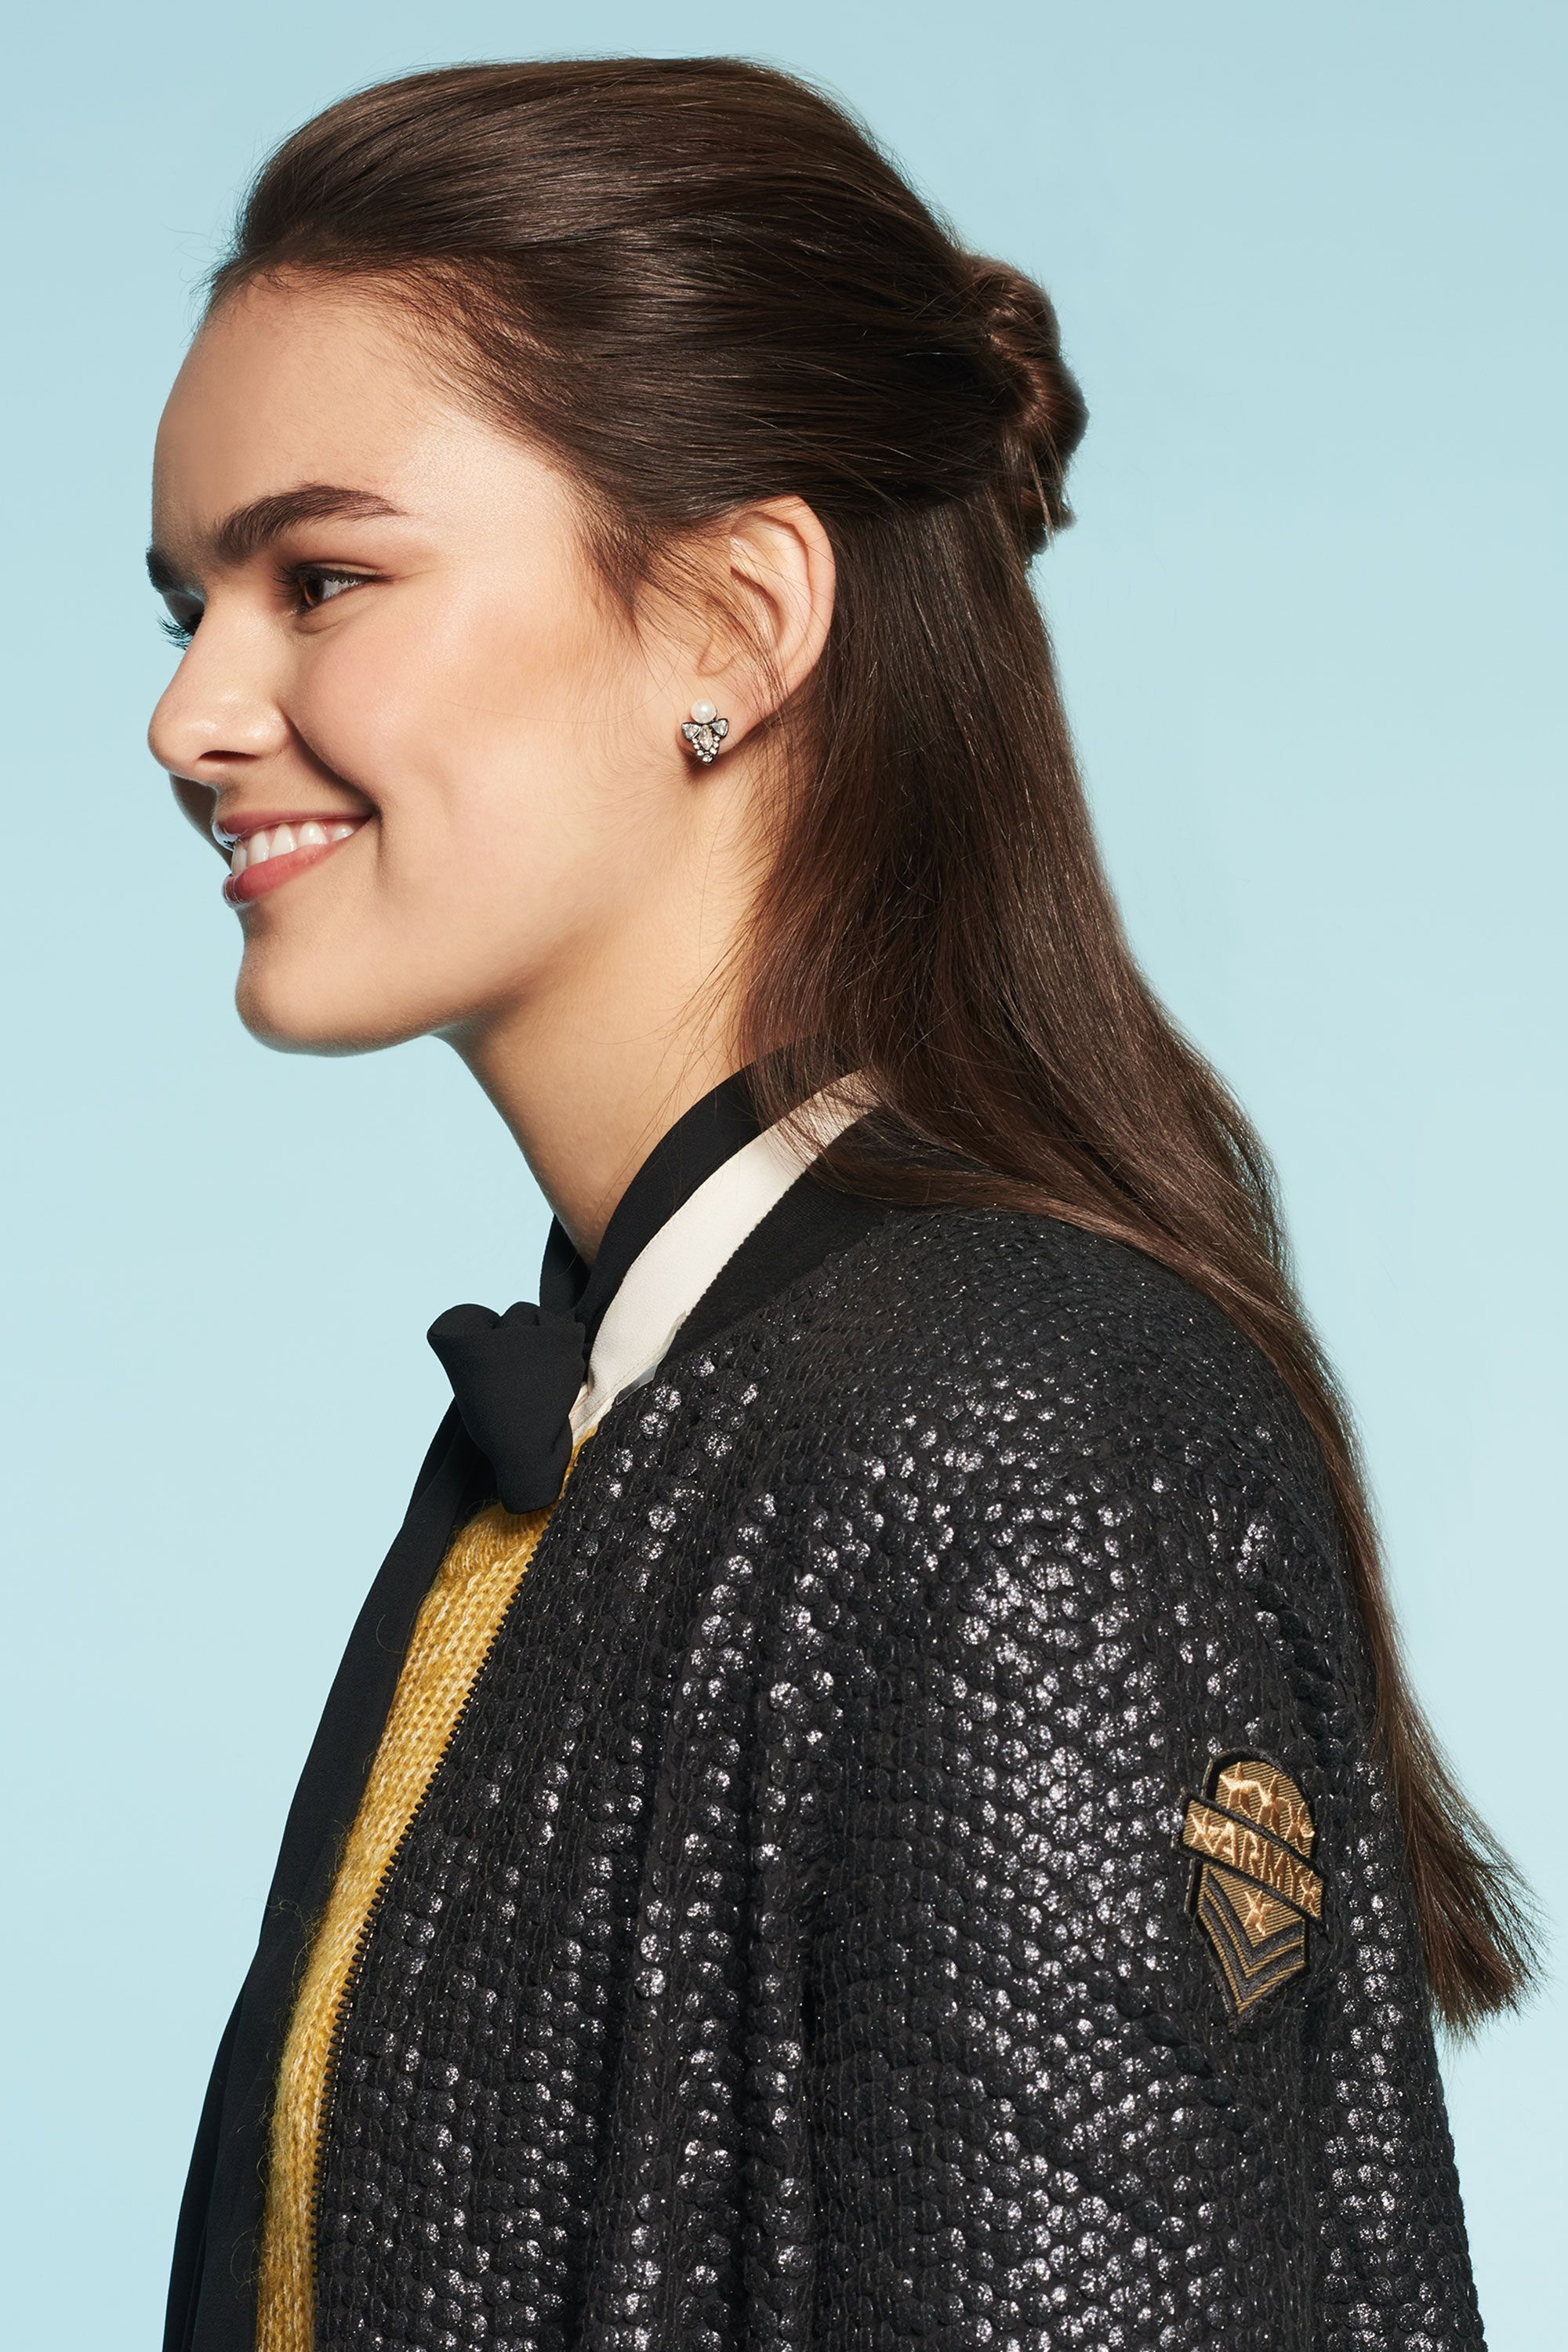 <p>Trying to make your look last half a week before you break out a sweat in gym? Instead of overloading on dry shampoo, use greasy roots to your best advantage by creating a super-cute, super-easy half-up bun.</p>